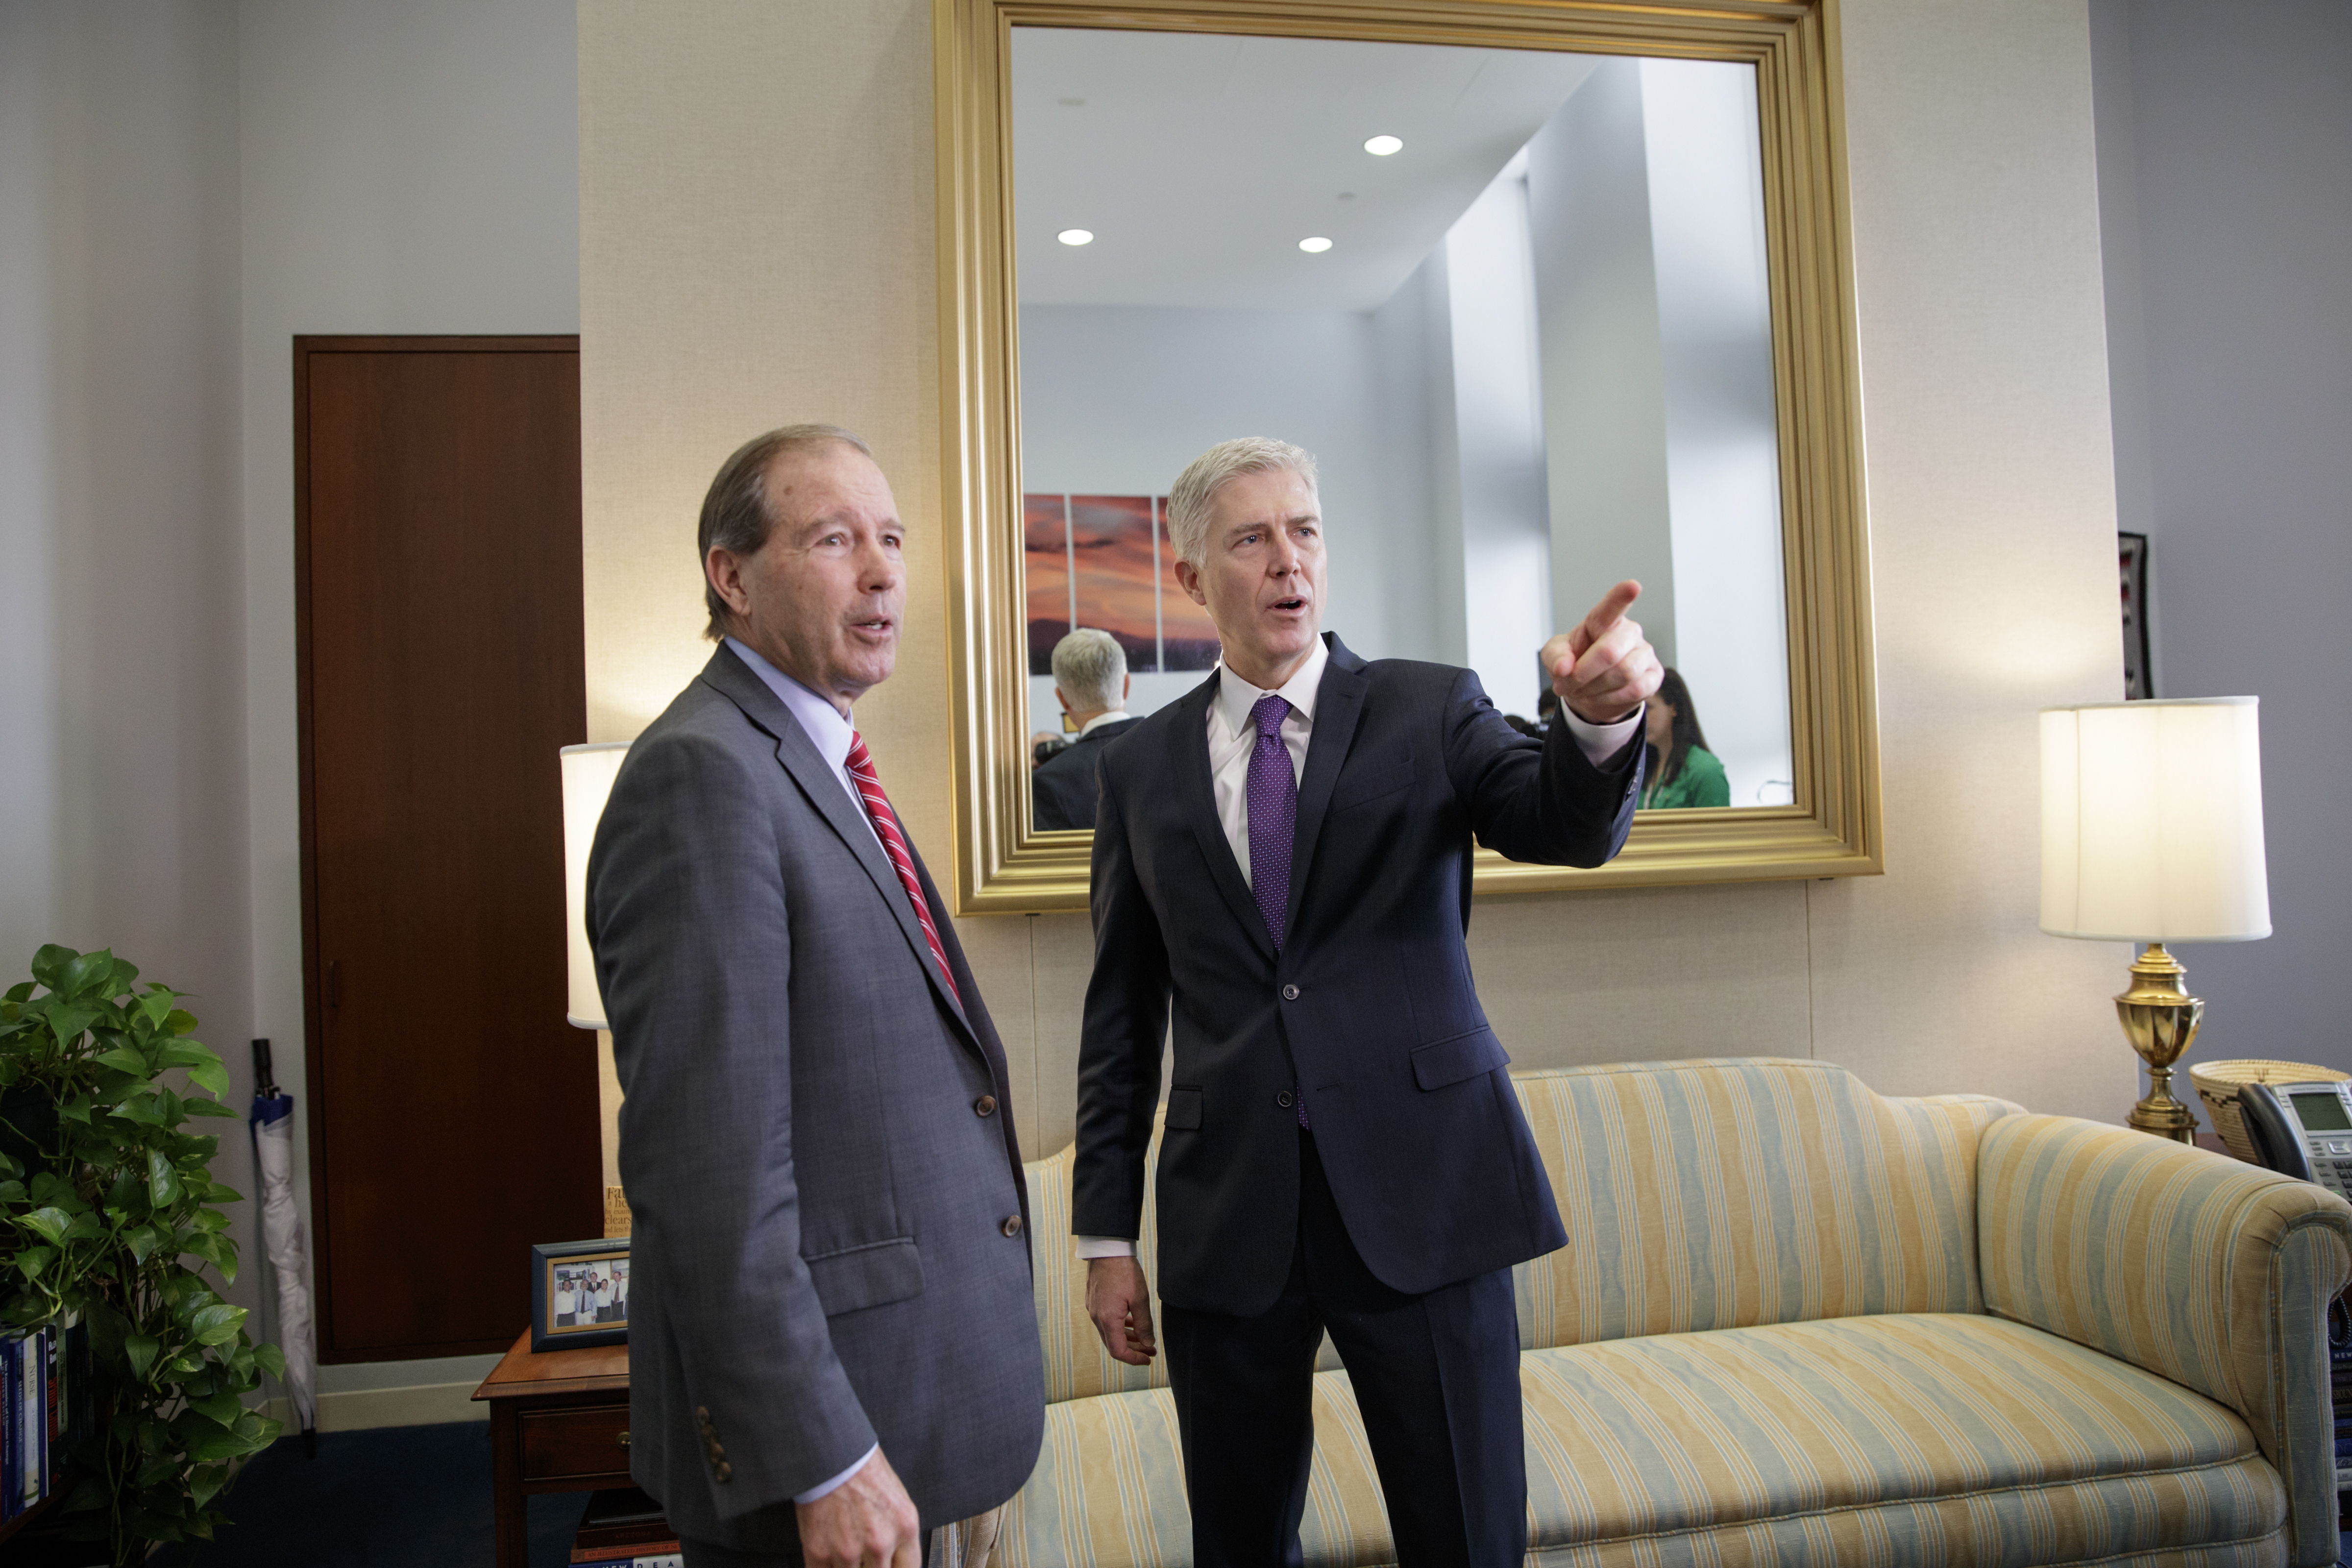 Supreme Court Justice nominee Judge Neil Gorsuch, right, meets with Sen. Tom Udall, D-N.M. on Capitol Hill in Washington, Feb. 27, 2017.